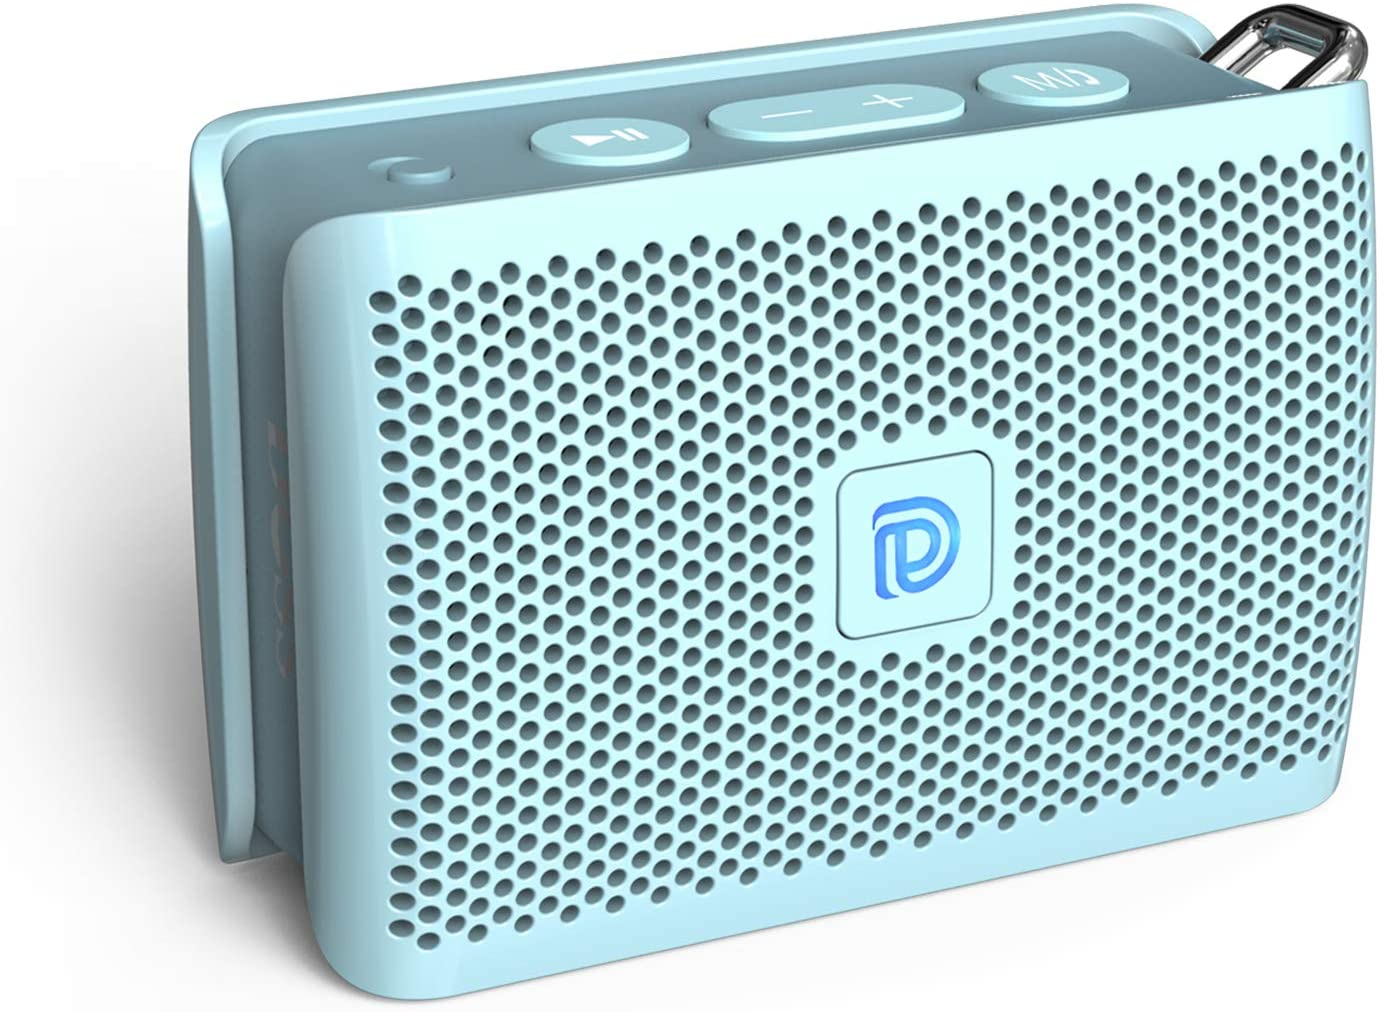 DOSS Genie Portable Bluetooth Speaker with Clean Sound, Built-in Mic, Ultra-Portable Design, Wireless Speaker Compatible for Home, Outdoors, Travel, Gift Ideas- Ice Blue